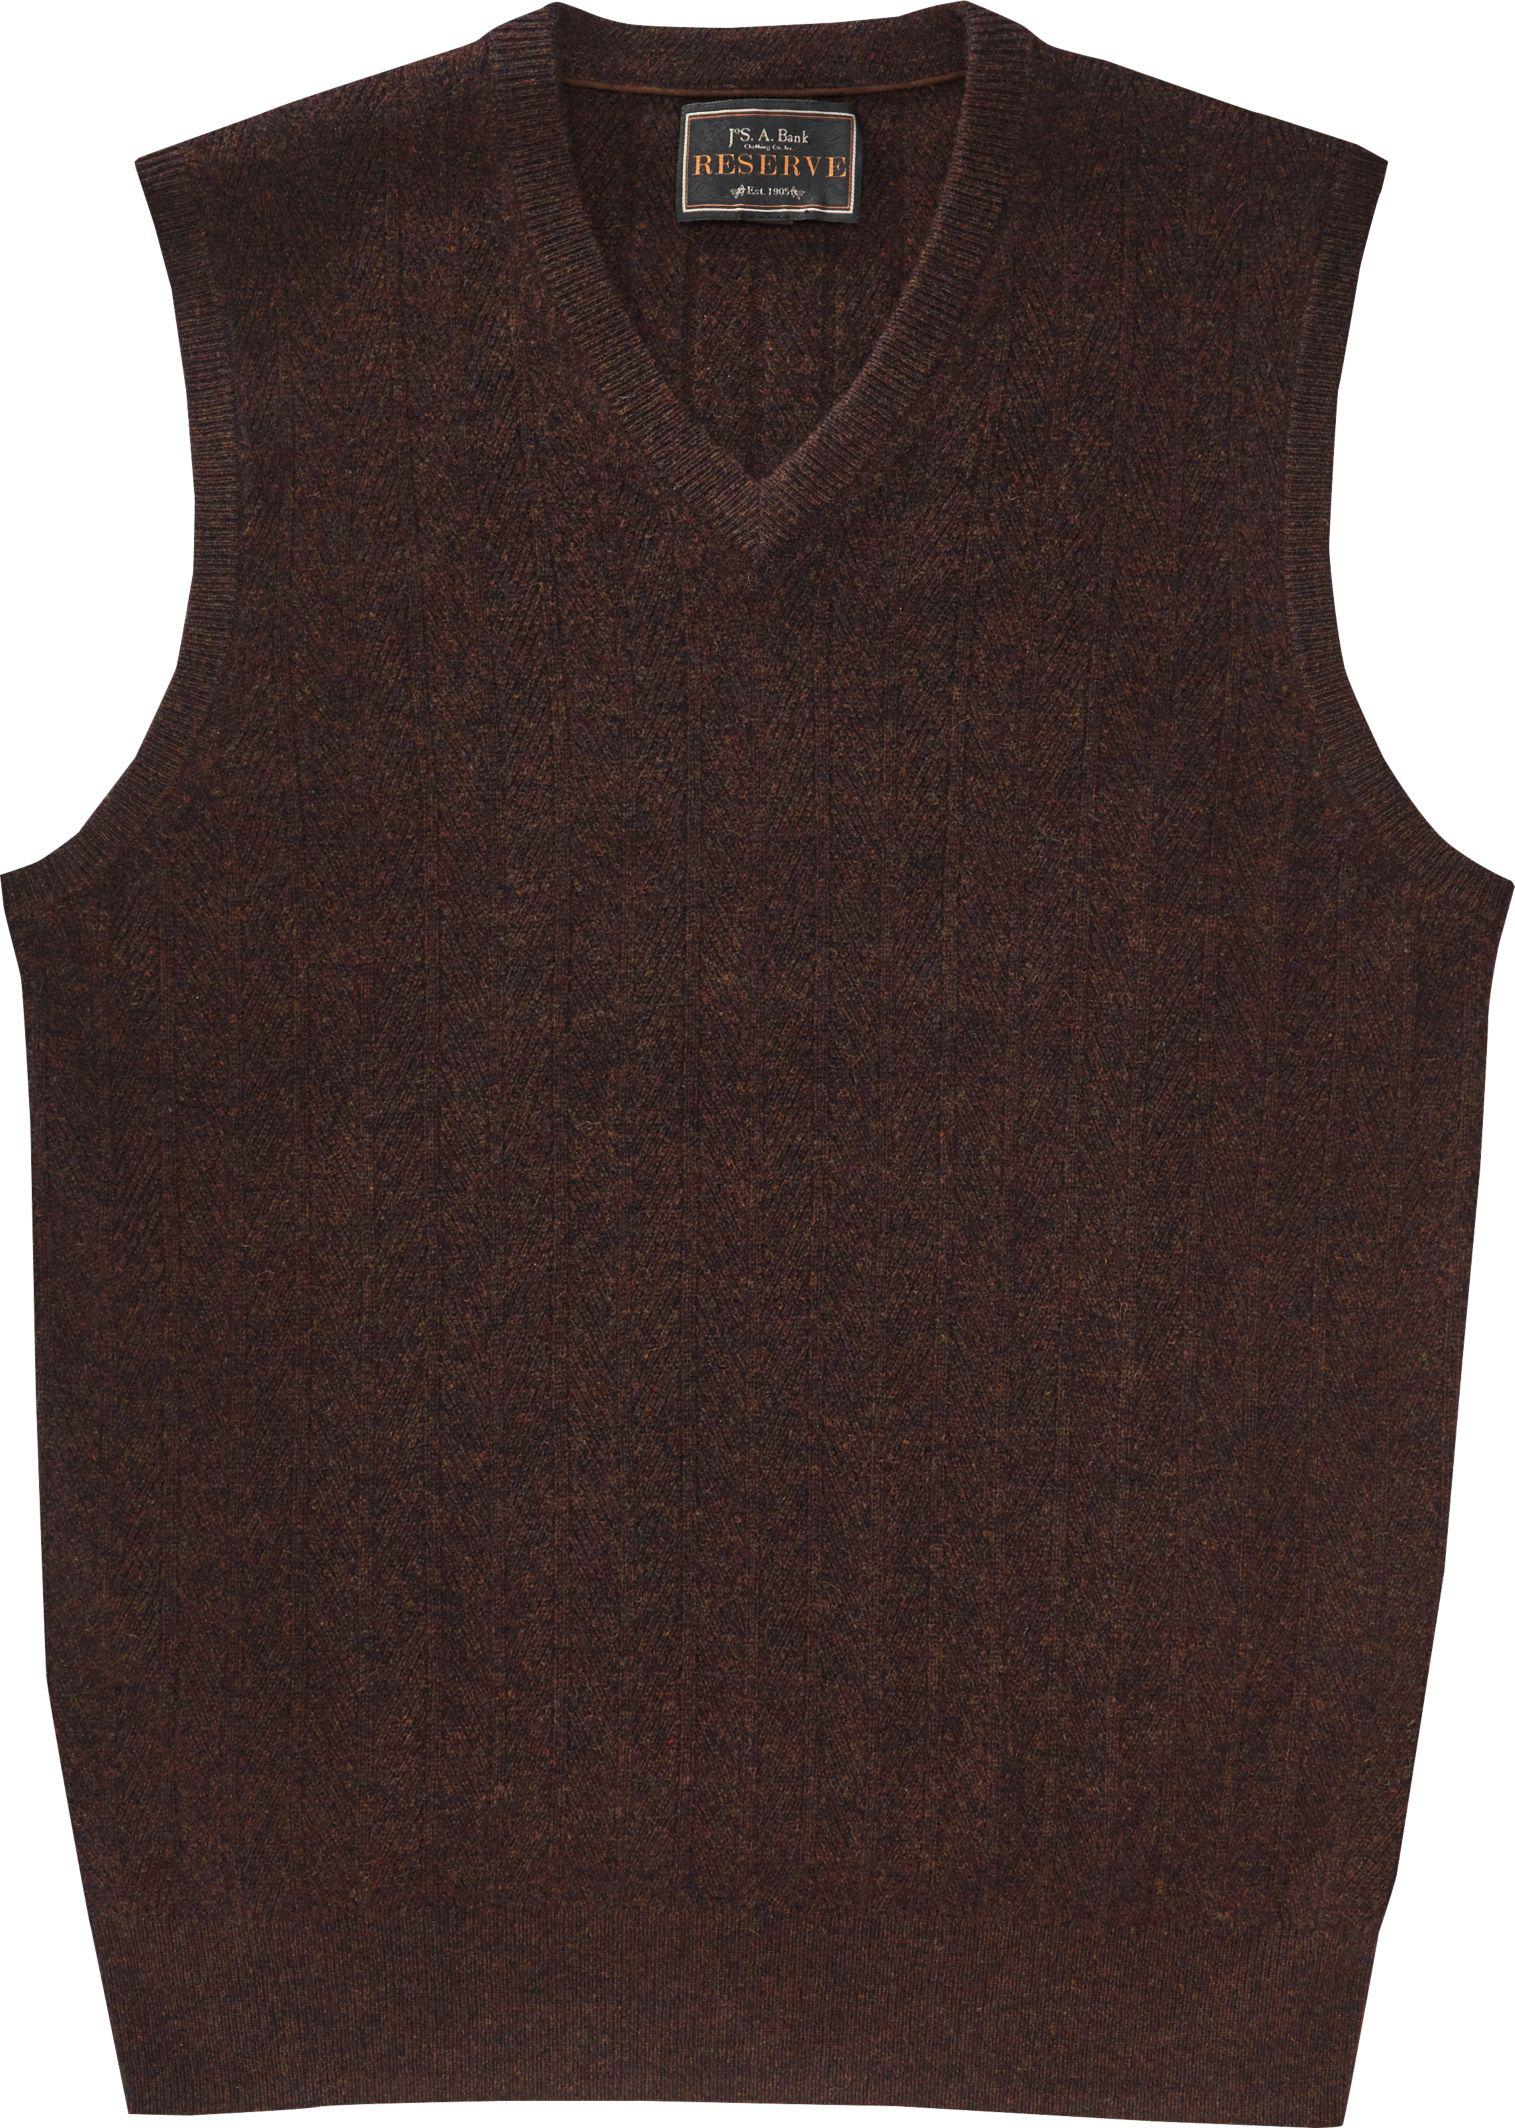 Jos. a. bank Reserve Collection Cashmere V-neck Sweater Vest in ...